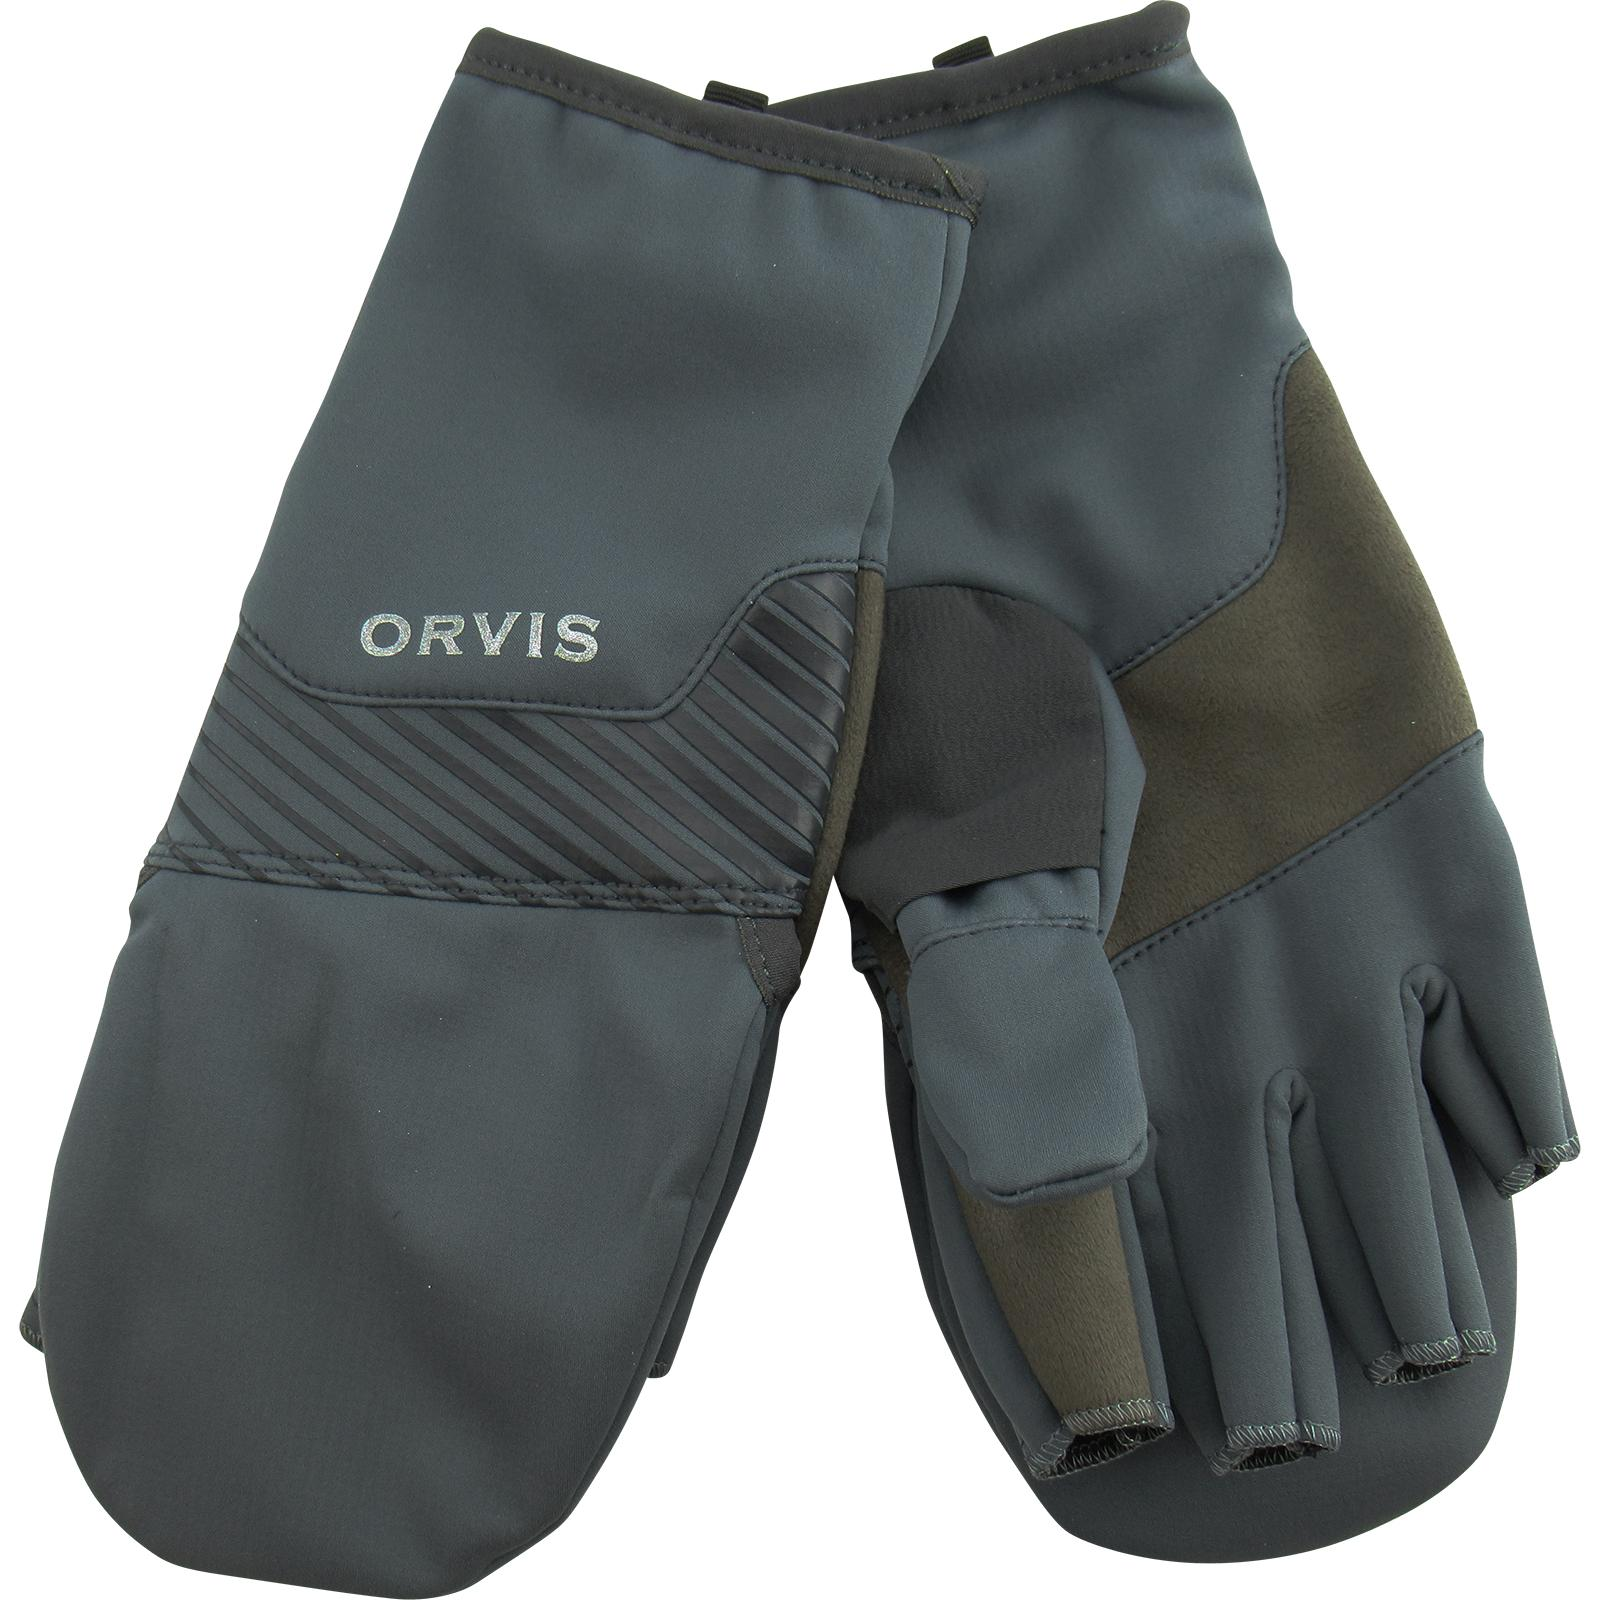 Orvis Men's Softshell Convertible Mitts